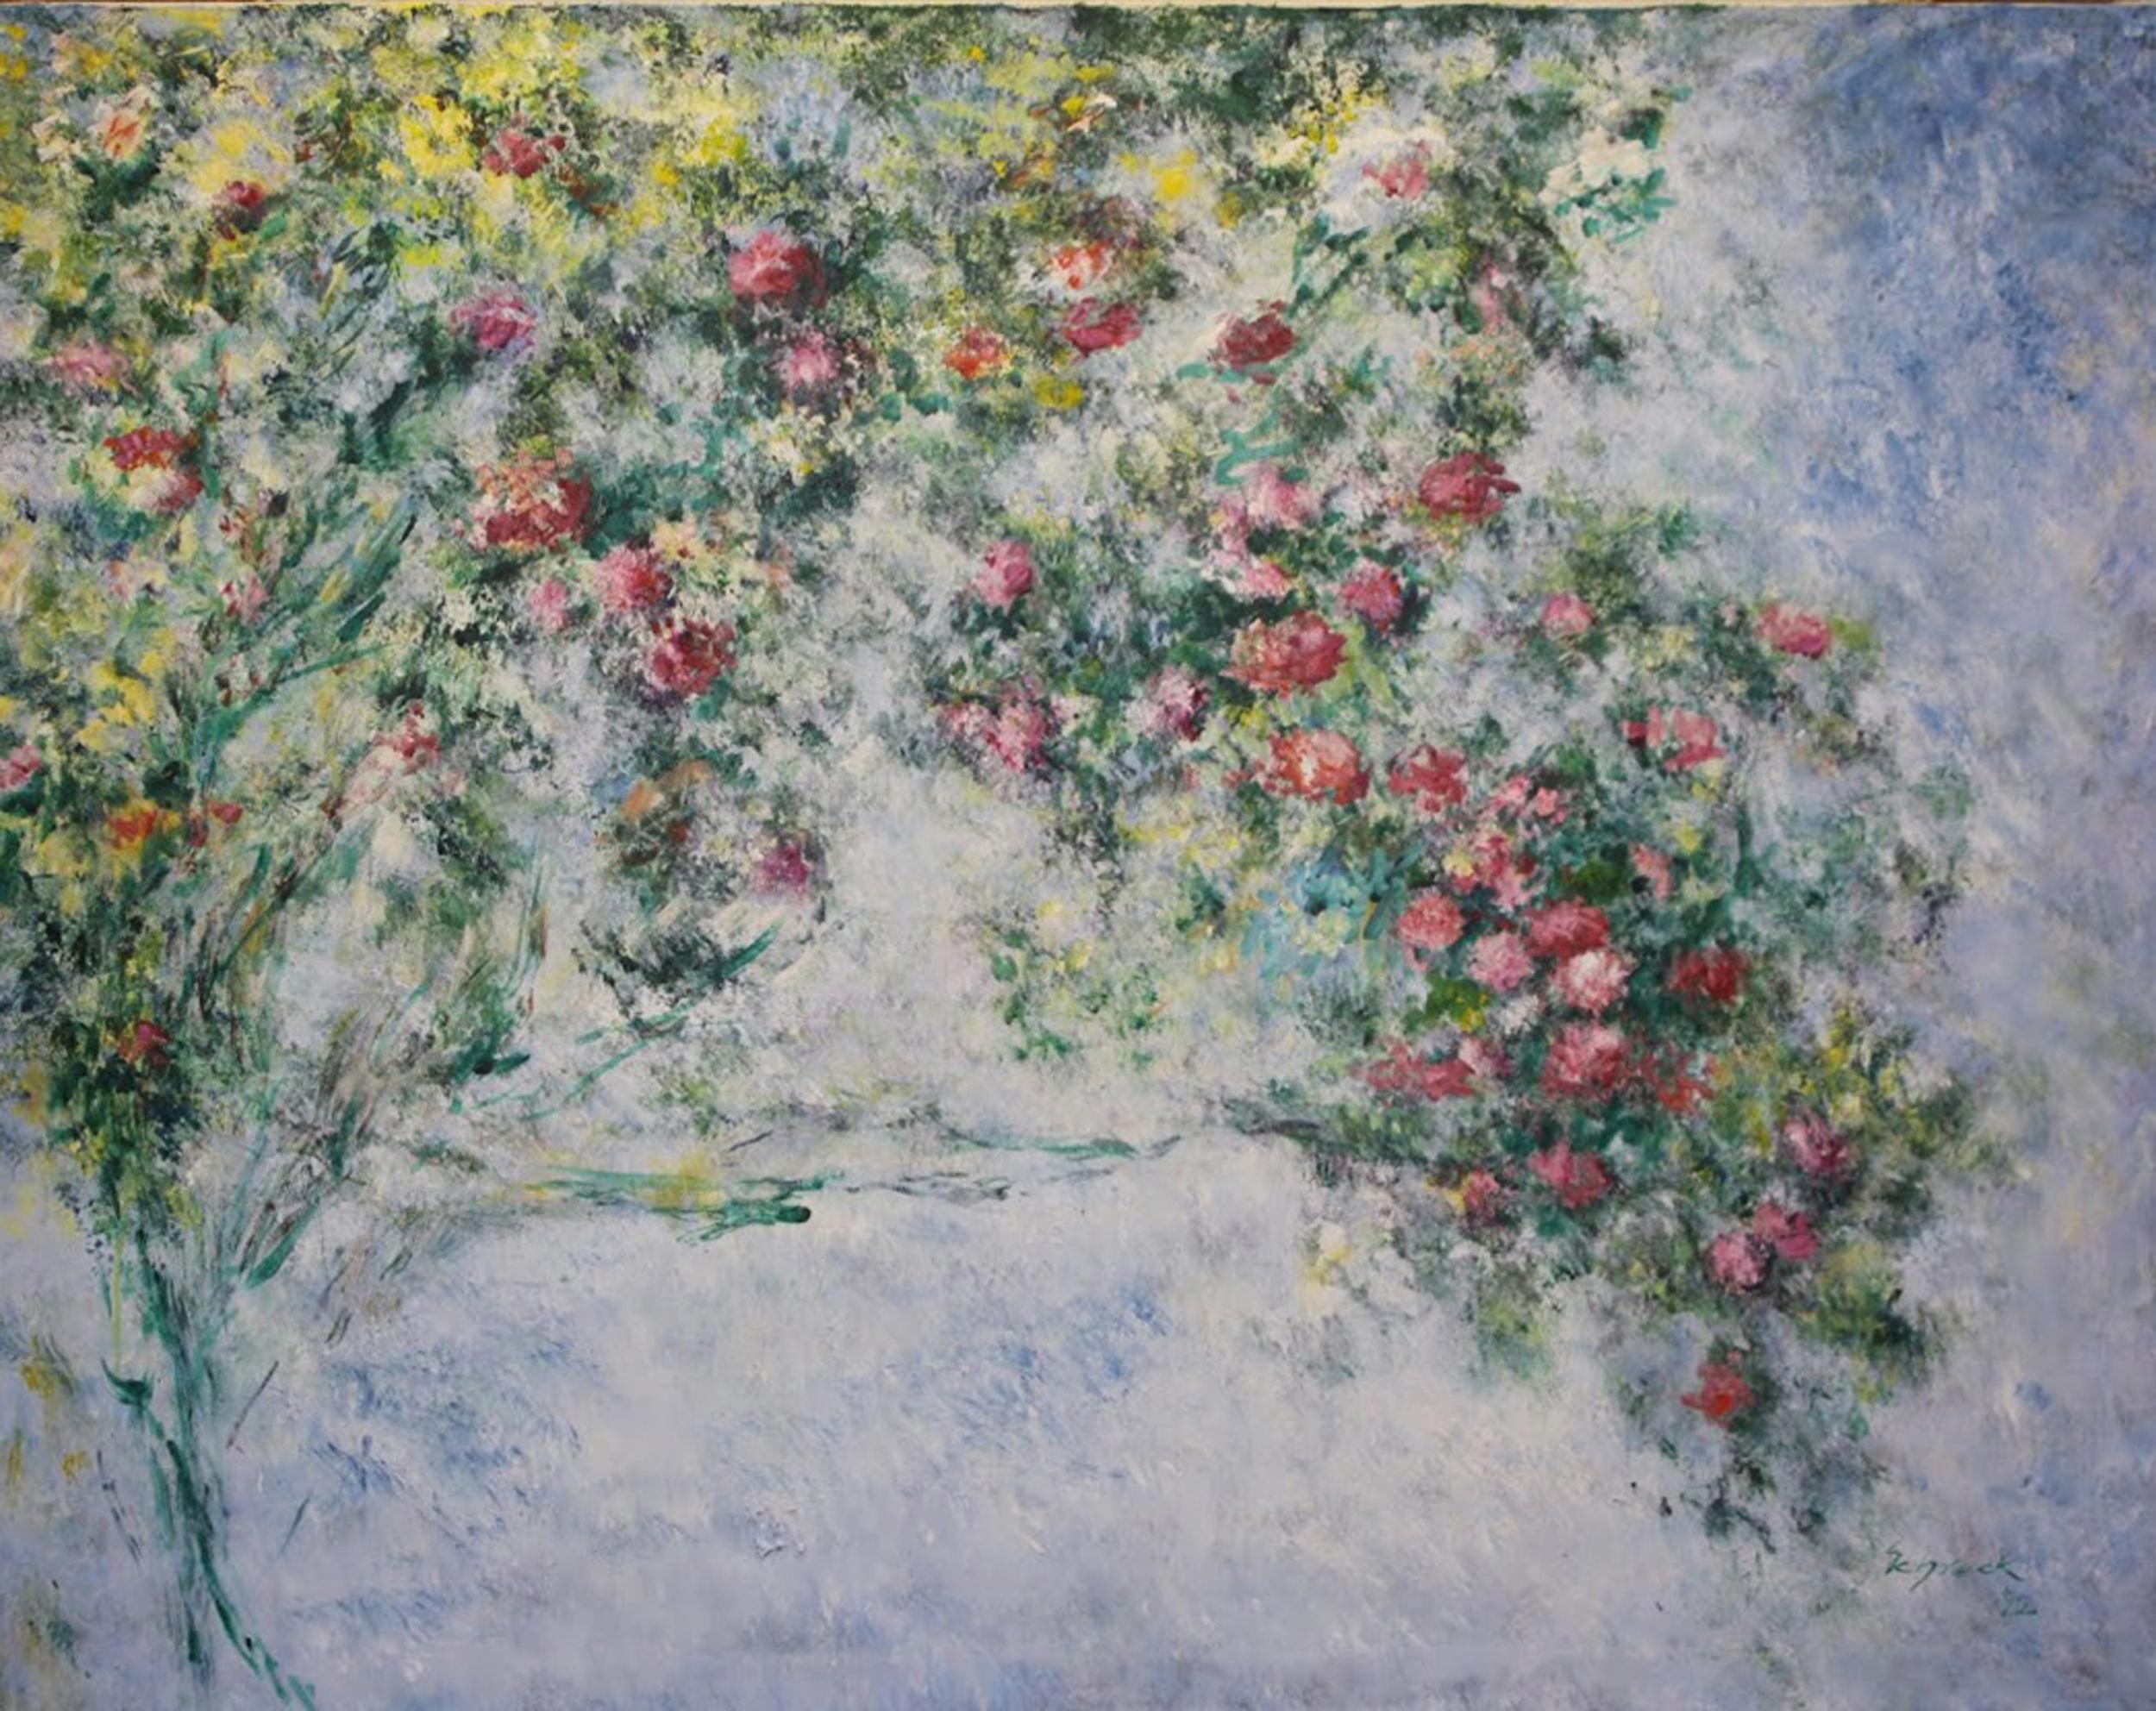 Michael Schreck, Homage to Monet's Roses, Acrylic Painting